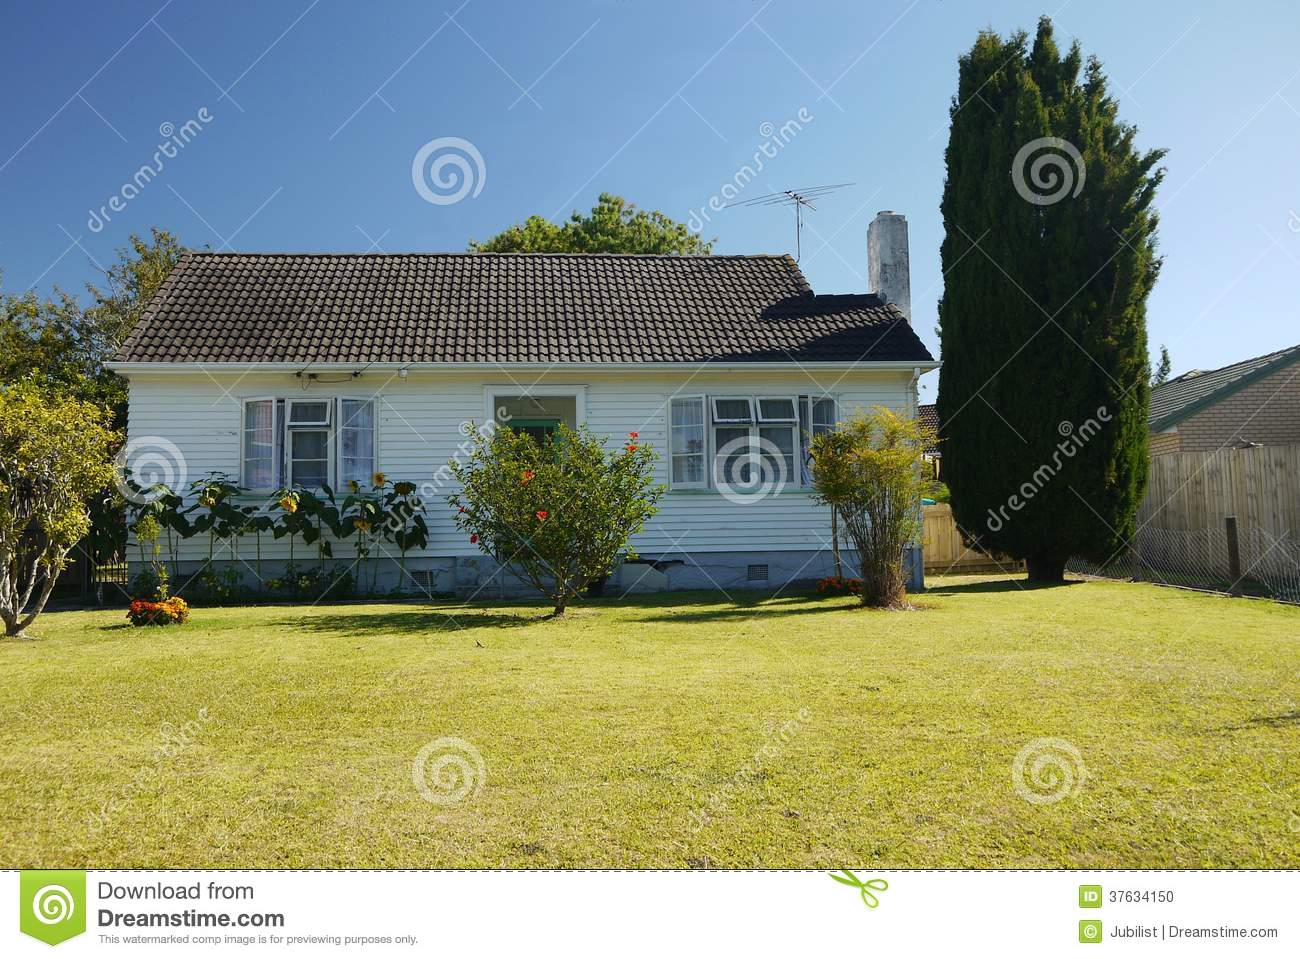 New Zealand Ordinary Small House With Lawn Stock Photo Image Of Bungalow Building 37634150